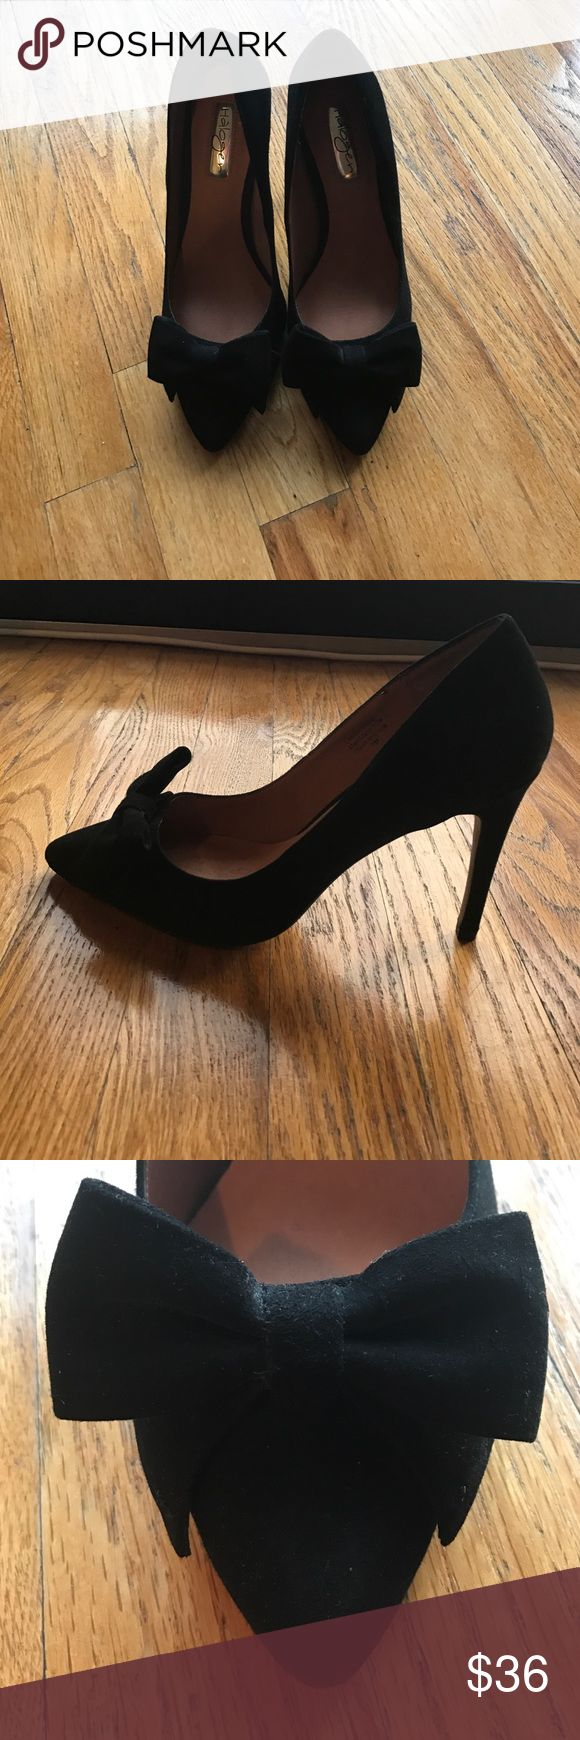 Black suede pumps with bow detail Never worn size 7 black suede pumps. Very cute bow detail. Purchased from Nordstrom Rack. Brand is Halogen. Halogen Shoes Heels